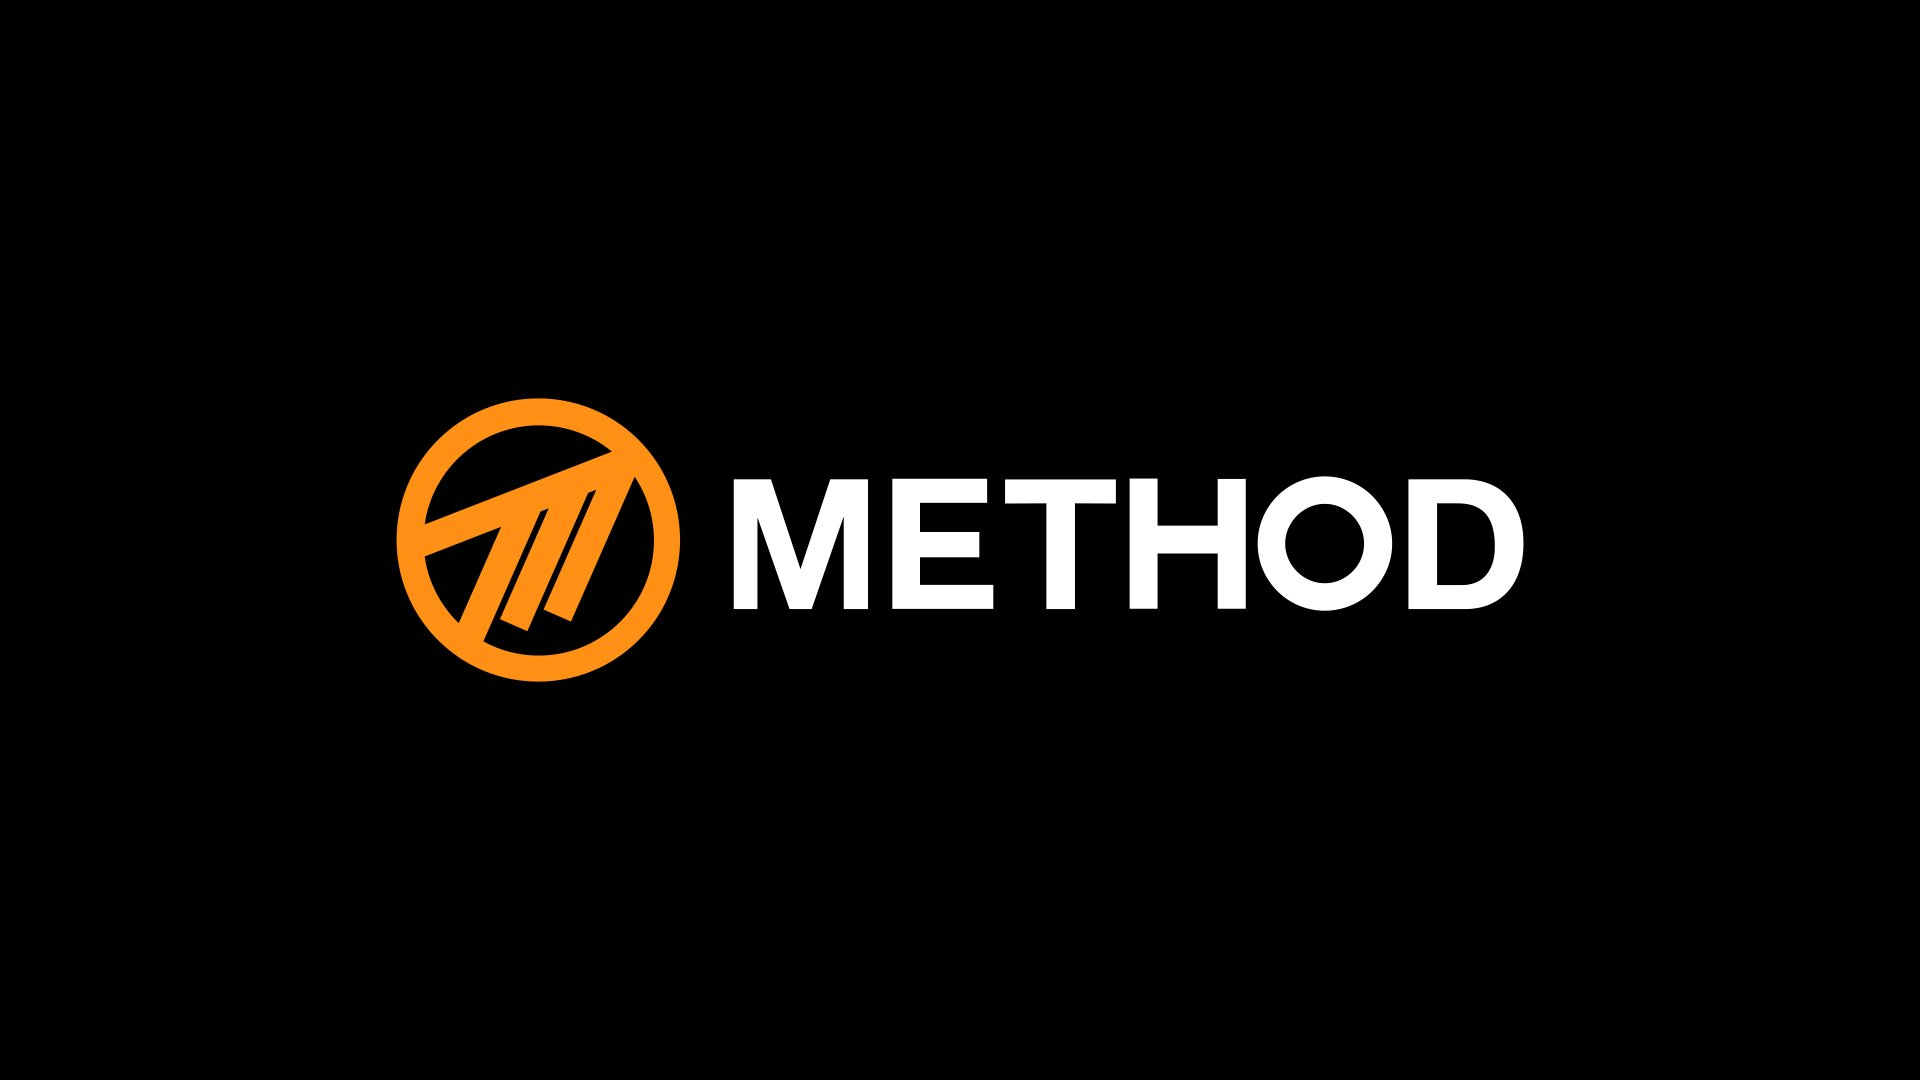 Method - Esports Organisation, WoW Guides, Videos, Streams